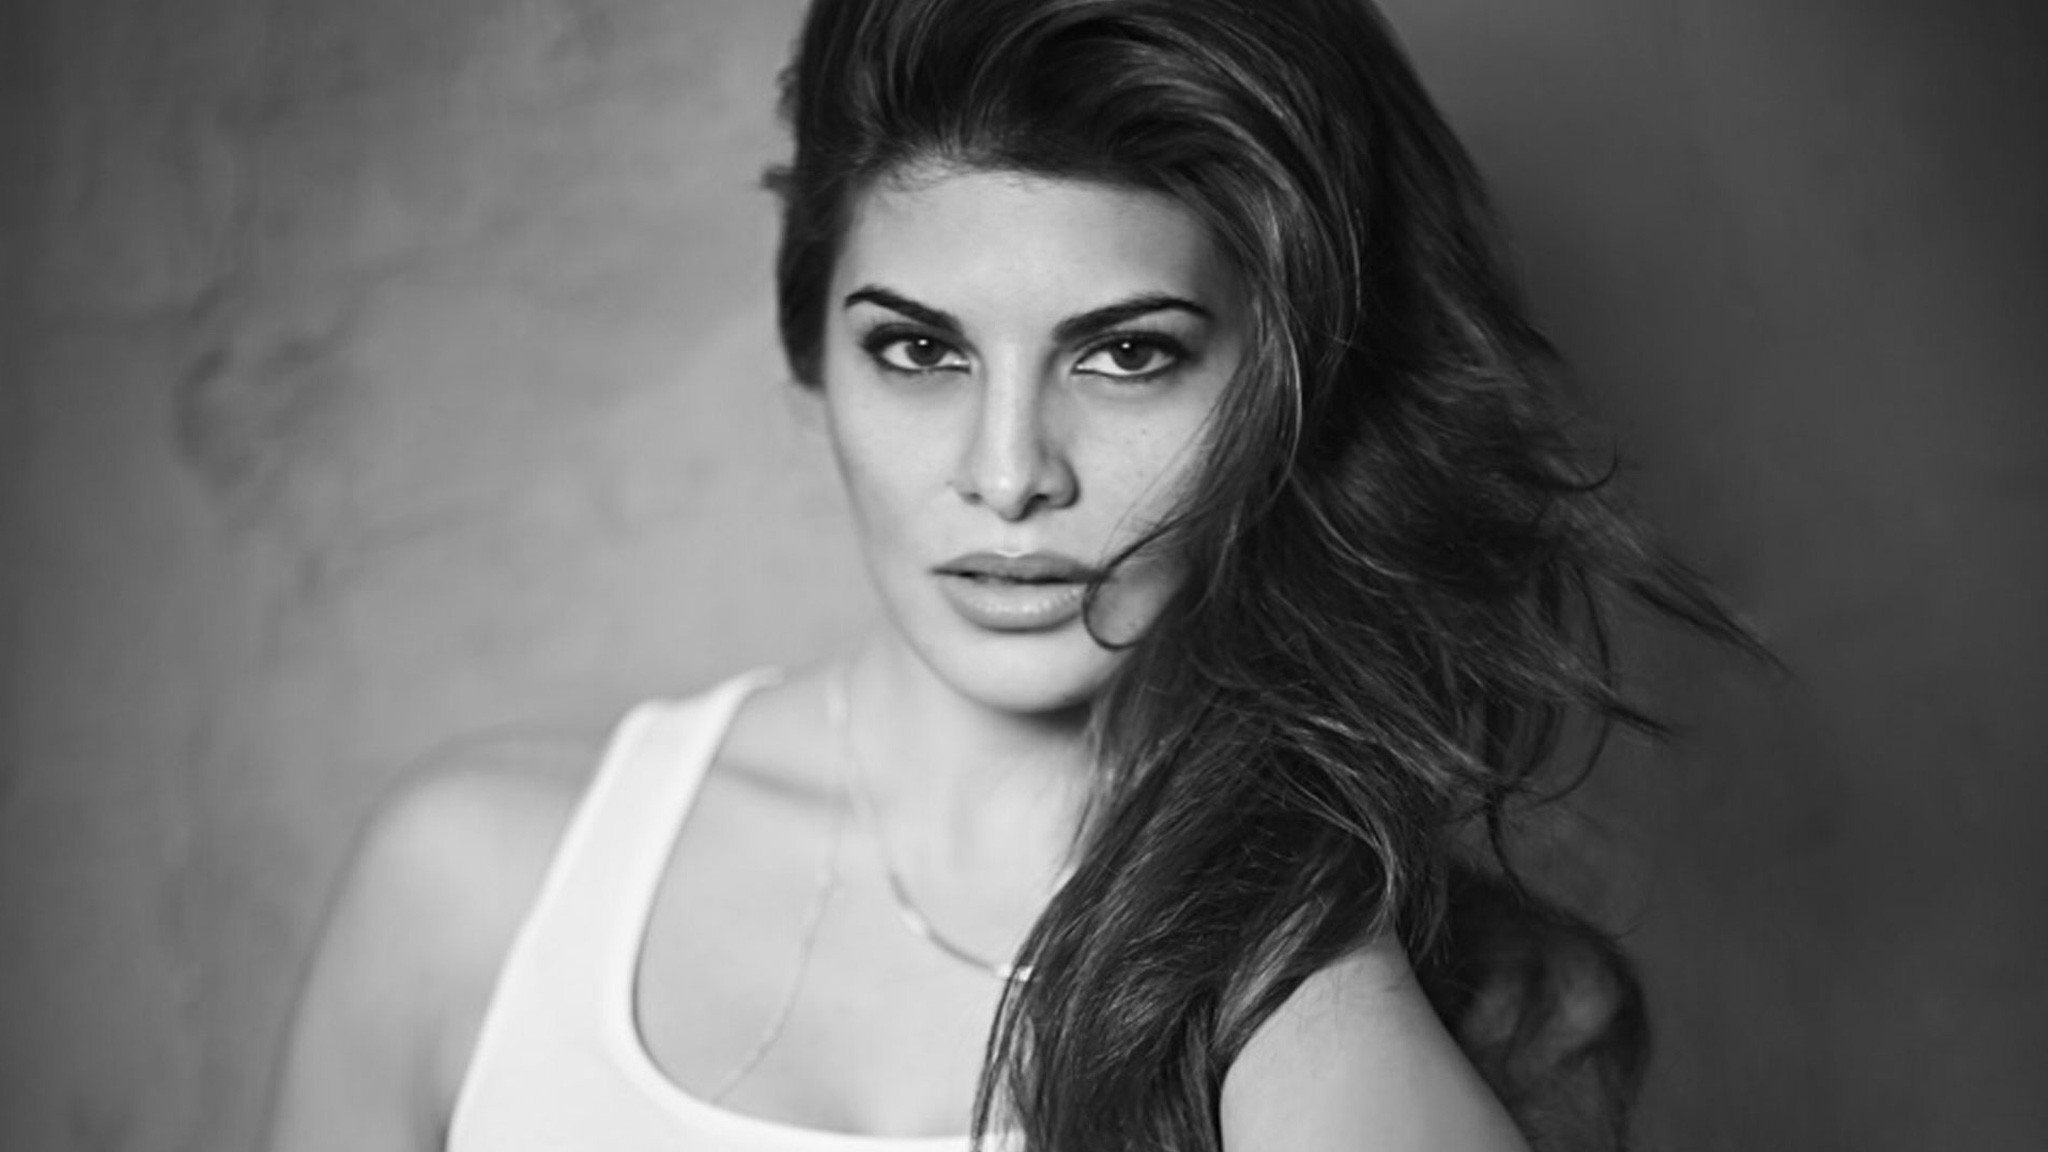 2048x1152 Jacqueline Fernandez New 2048x1152 Resolution Hd 4k